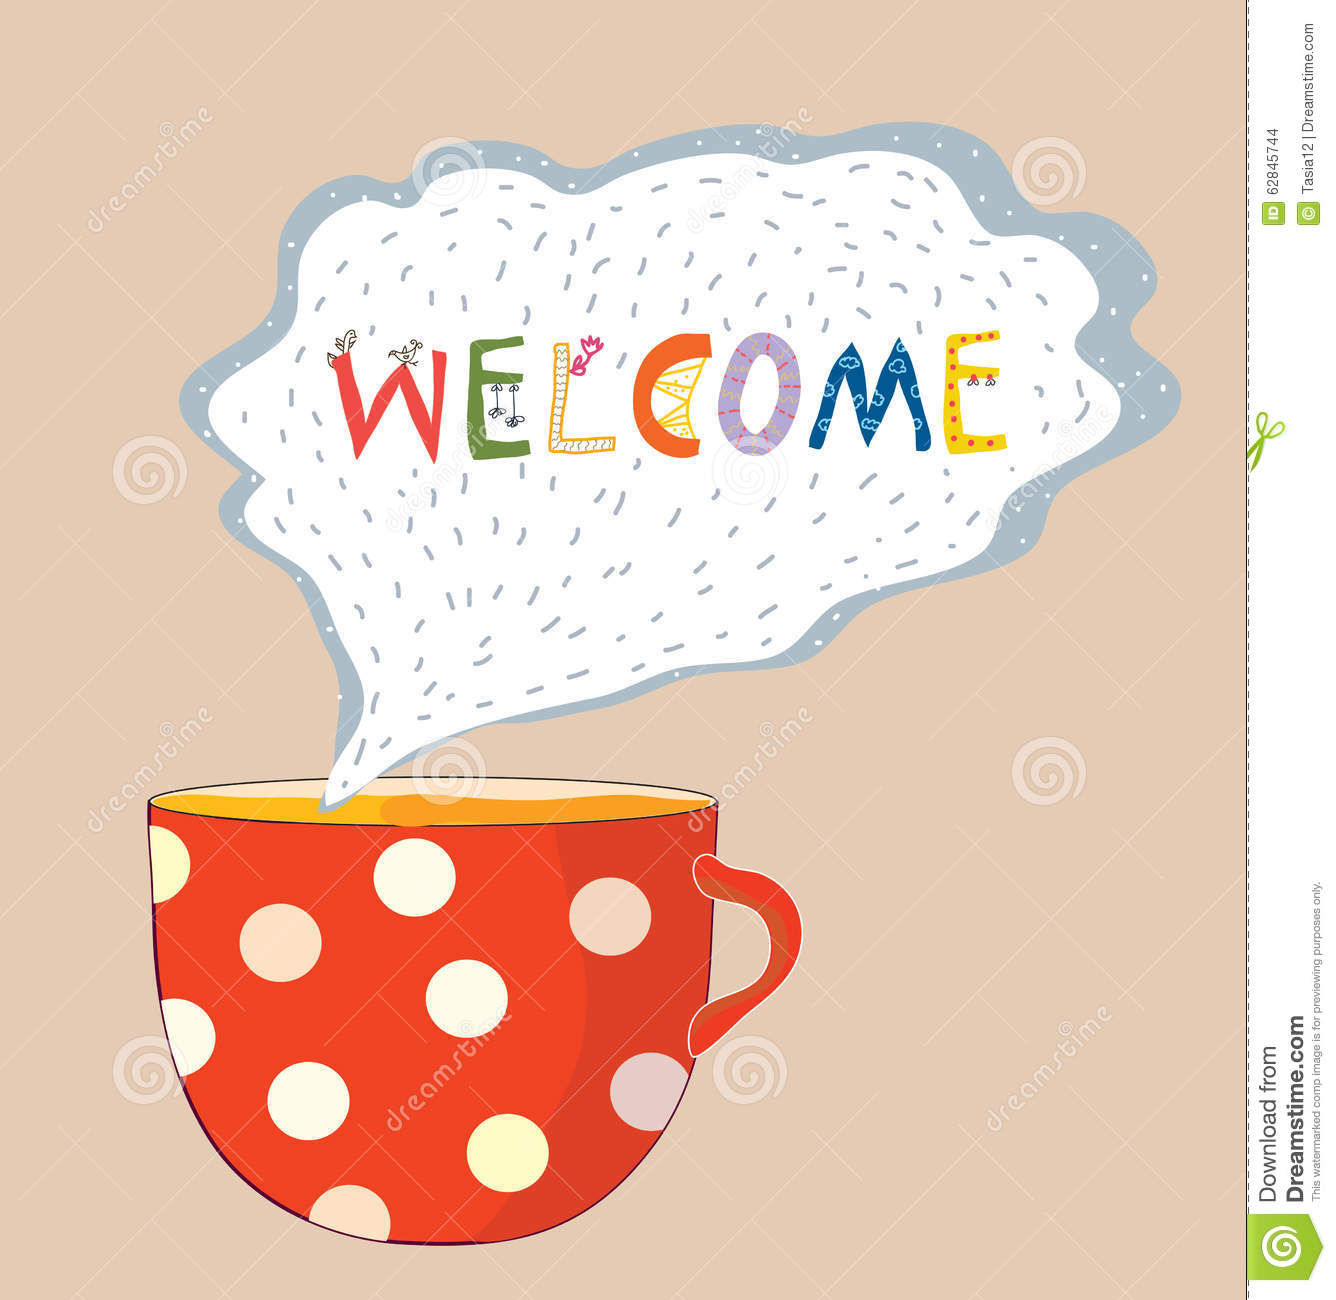 Tea Cup Welcome Card - Cute Design Stock Vector - Image: 62845744